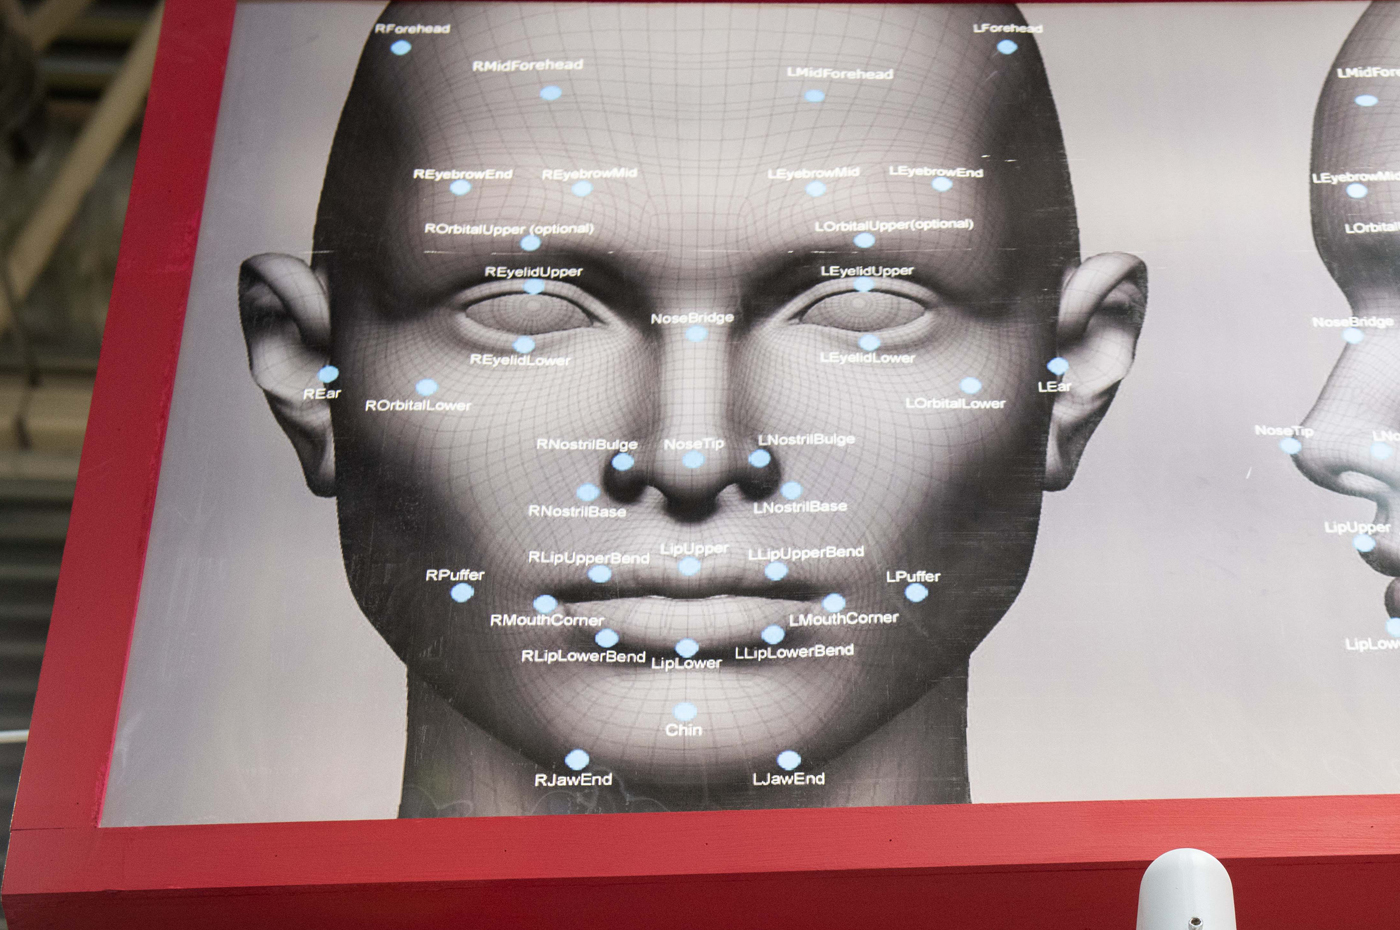 San Francisco could ban facial recognition technology, becoming first US city to do so